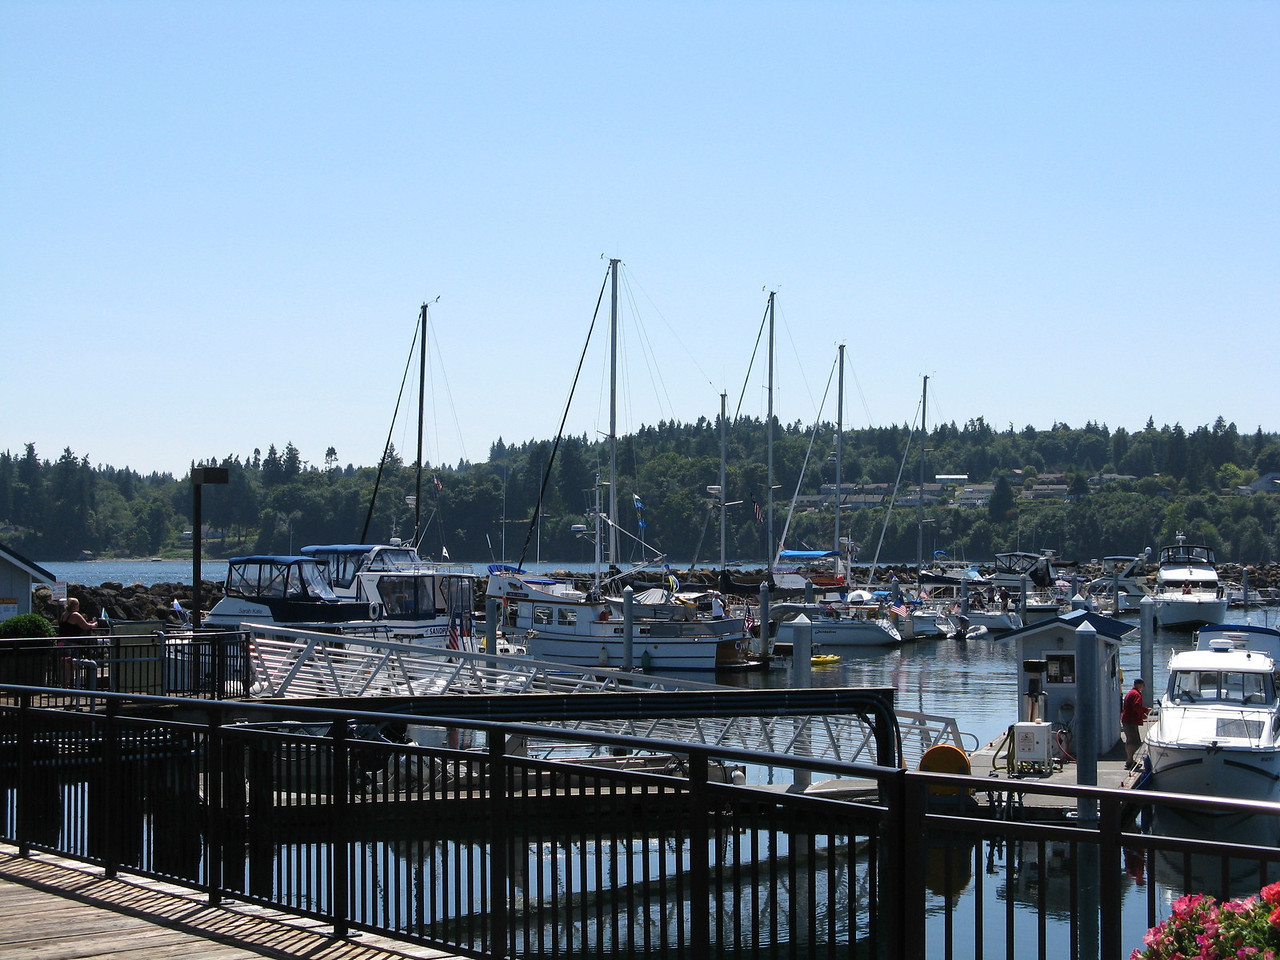 The Kingston Marina was crowded on this Saturday in mid-August.